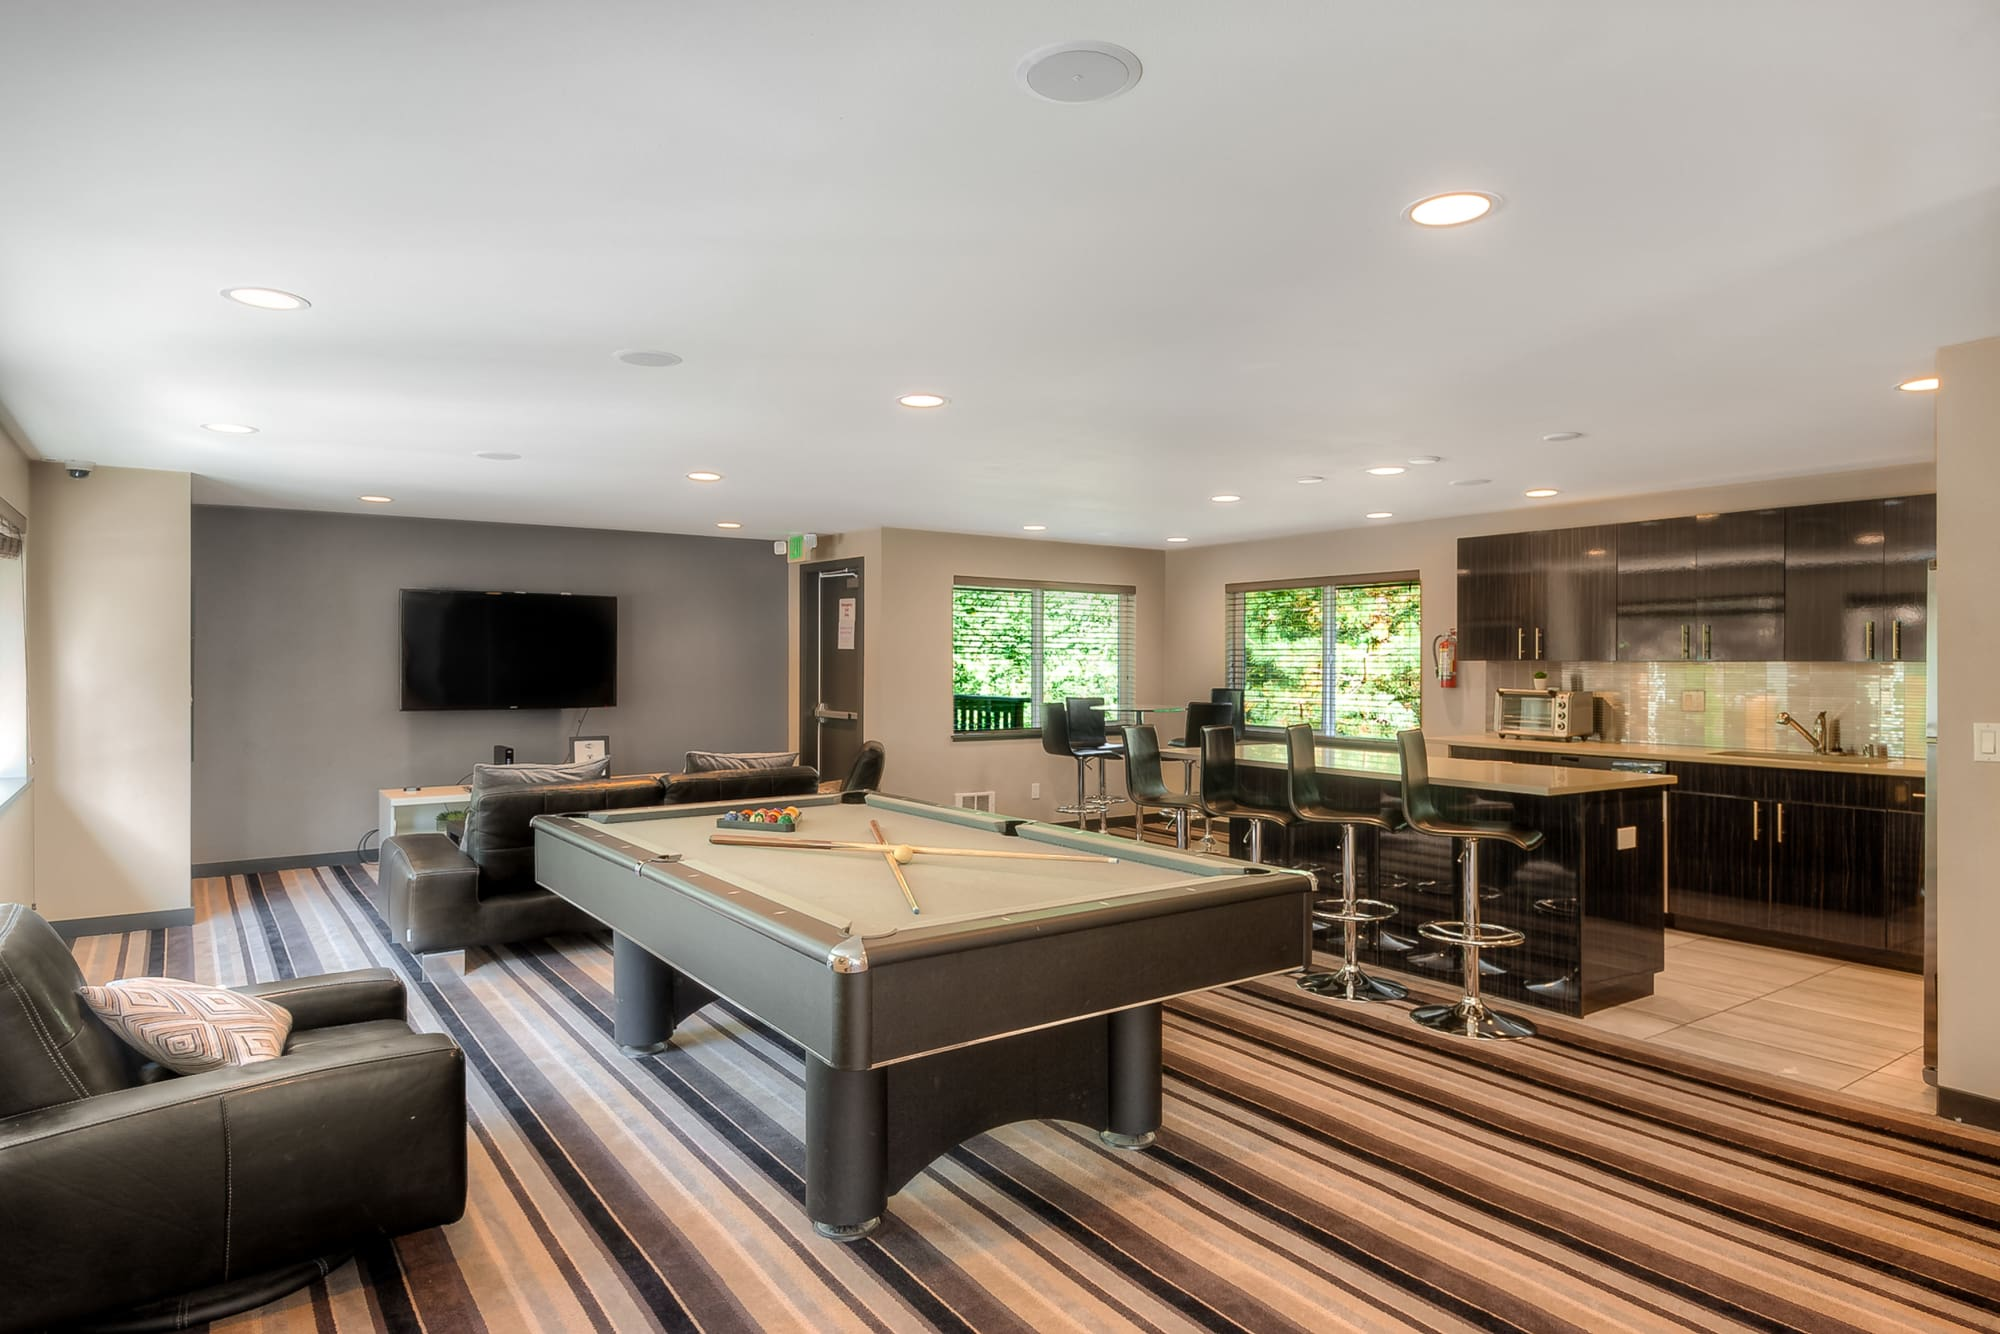 Game room with a pool table at Karbon Apartments in Newcastle, Washington